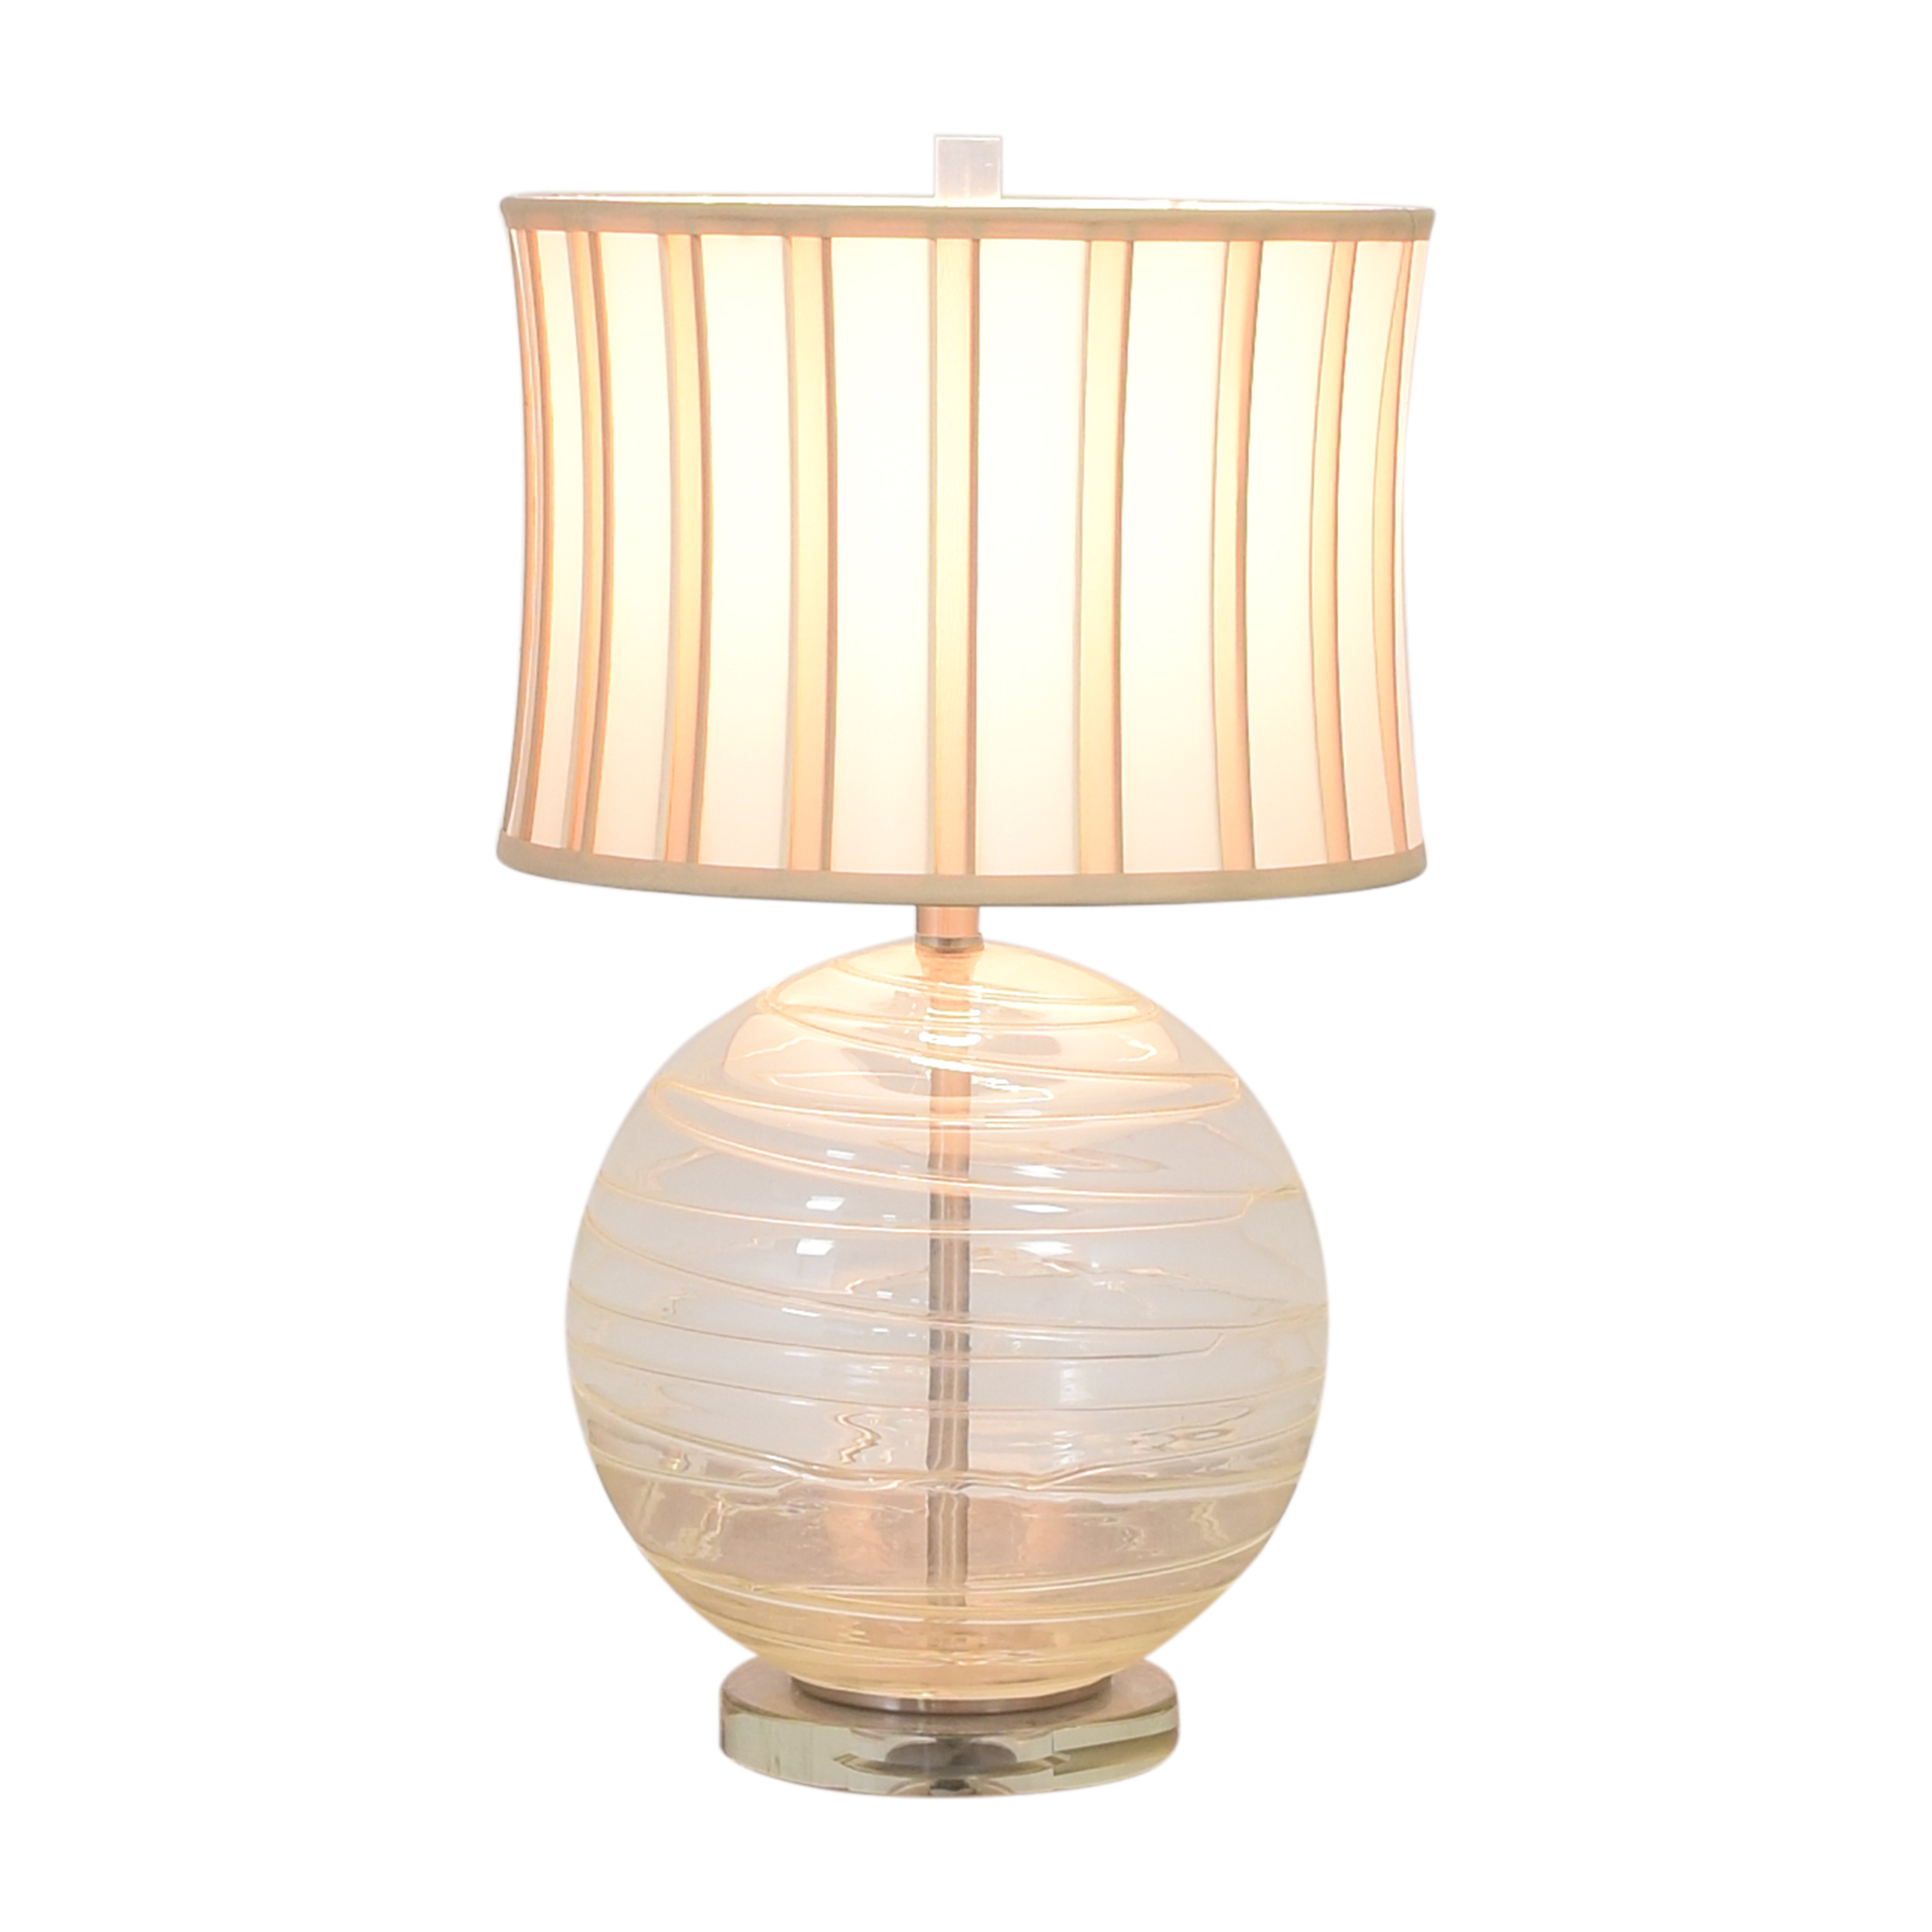 Striped Orb Lamp for sale